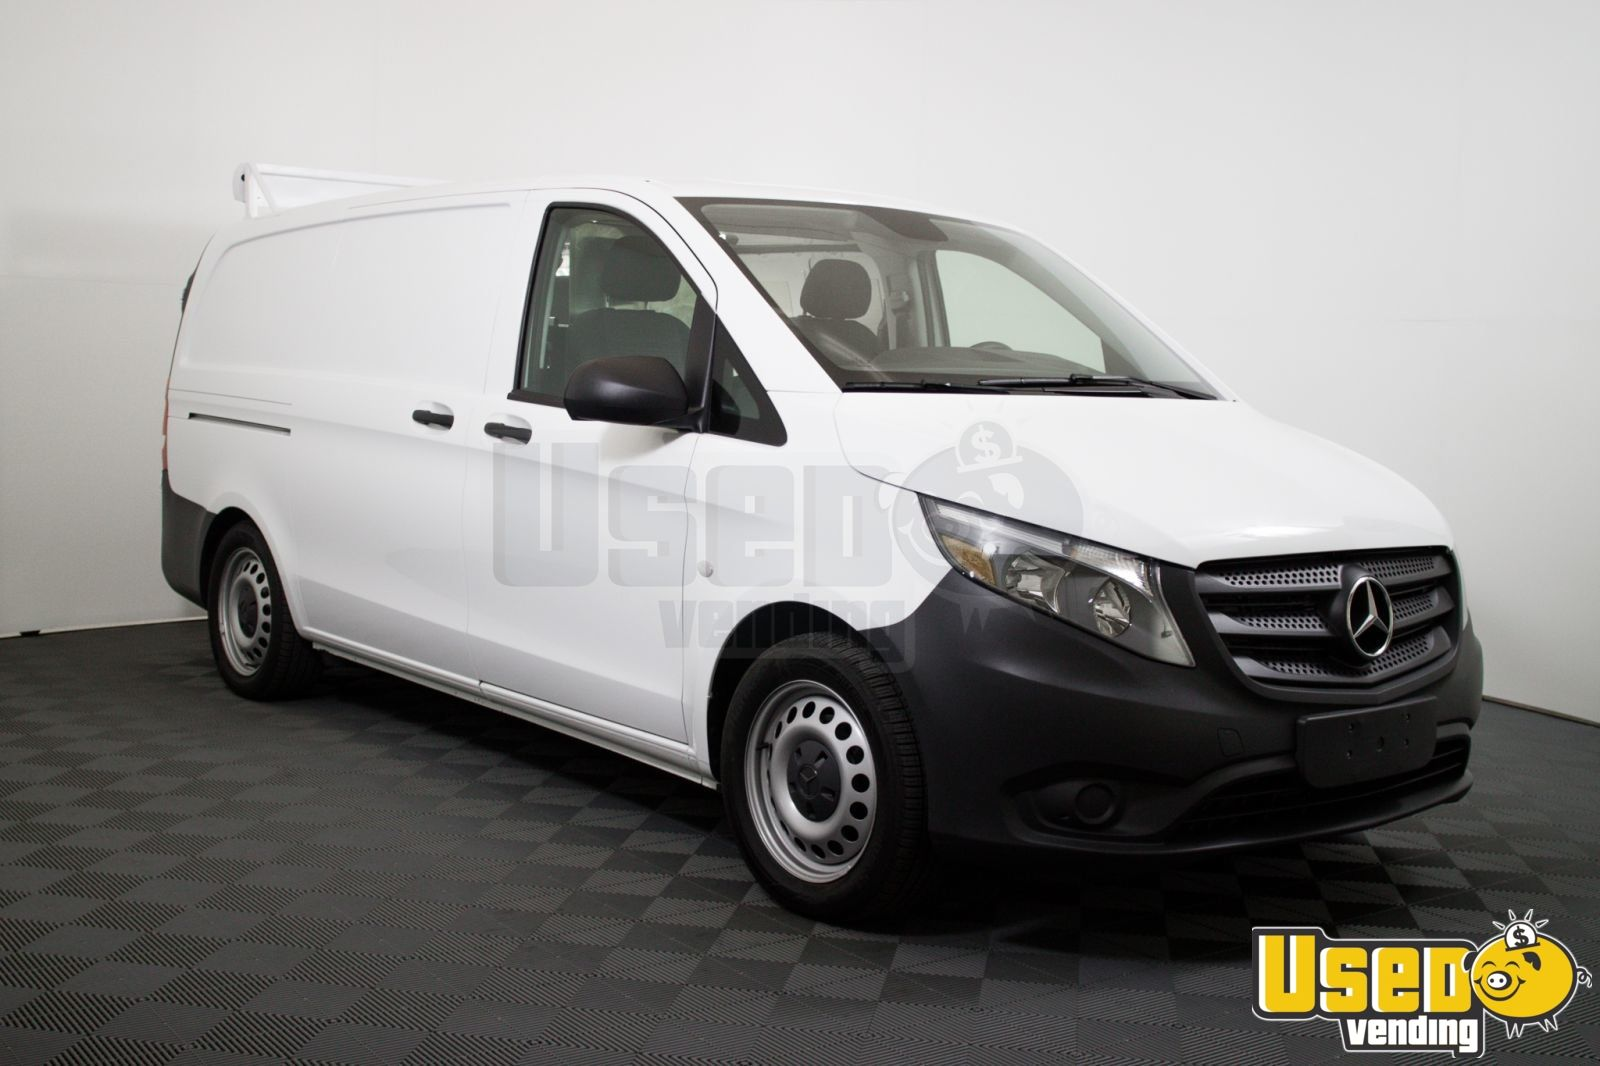 2016 Mercedes Benz Metris Coffee Truck Air Conditioning Colorado Gas Engine for Sale - 2